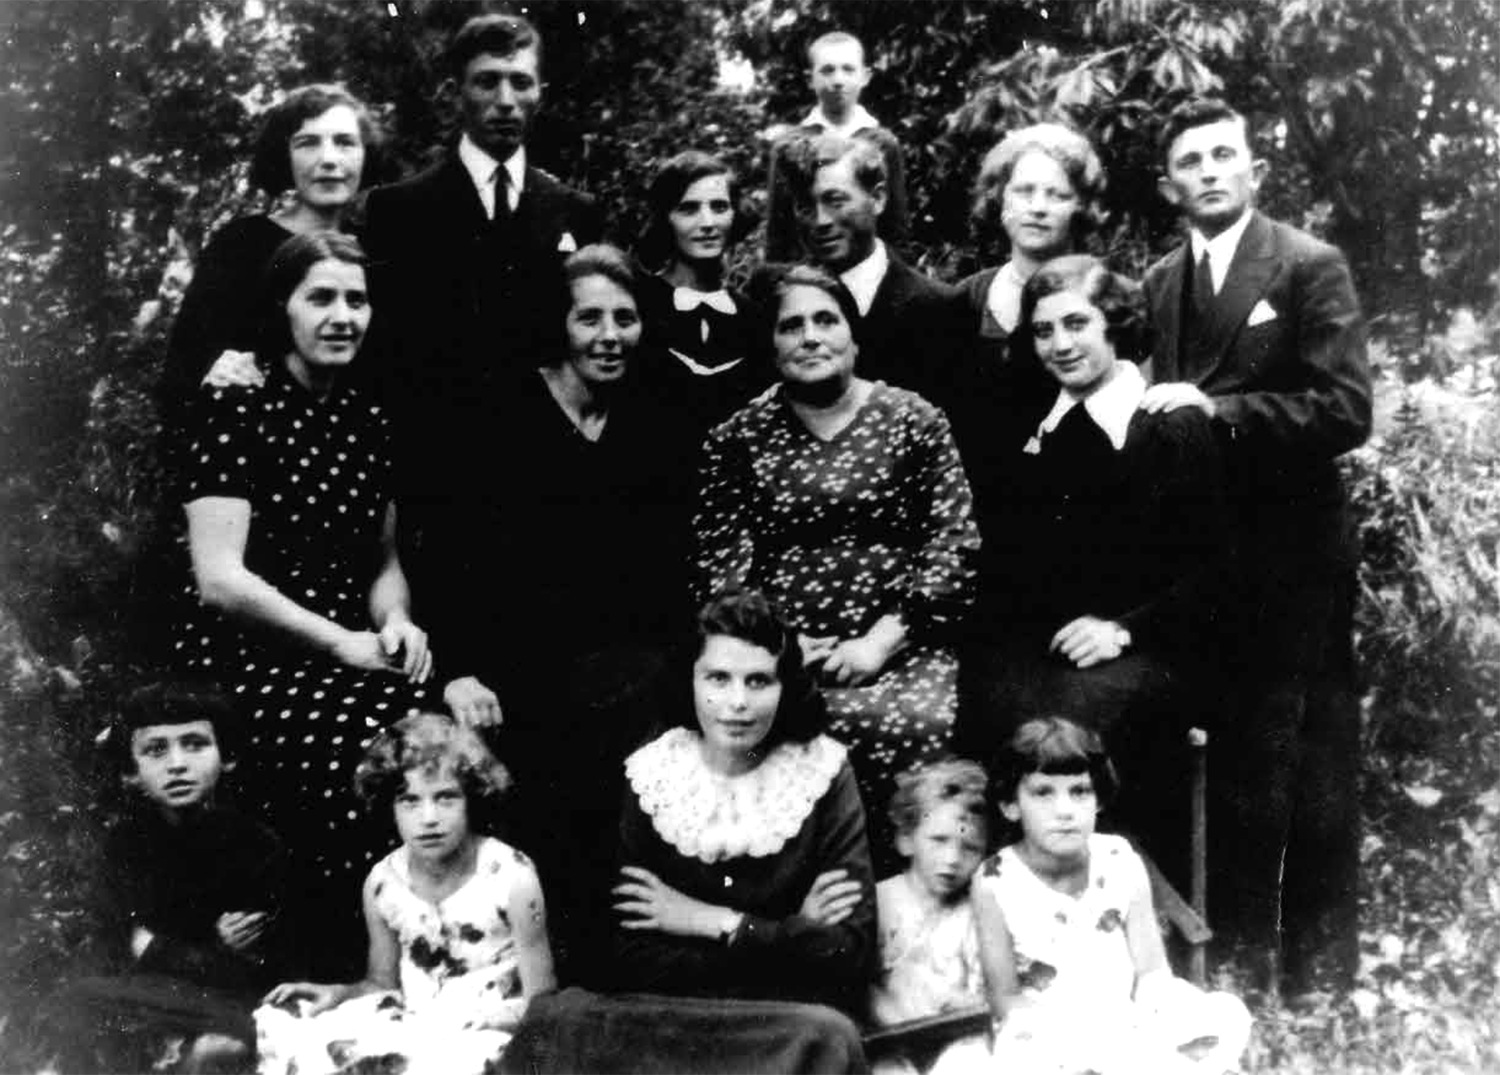 Yoel and Leah Strauber descendants - 1935